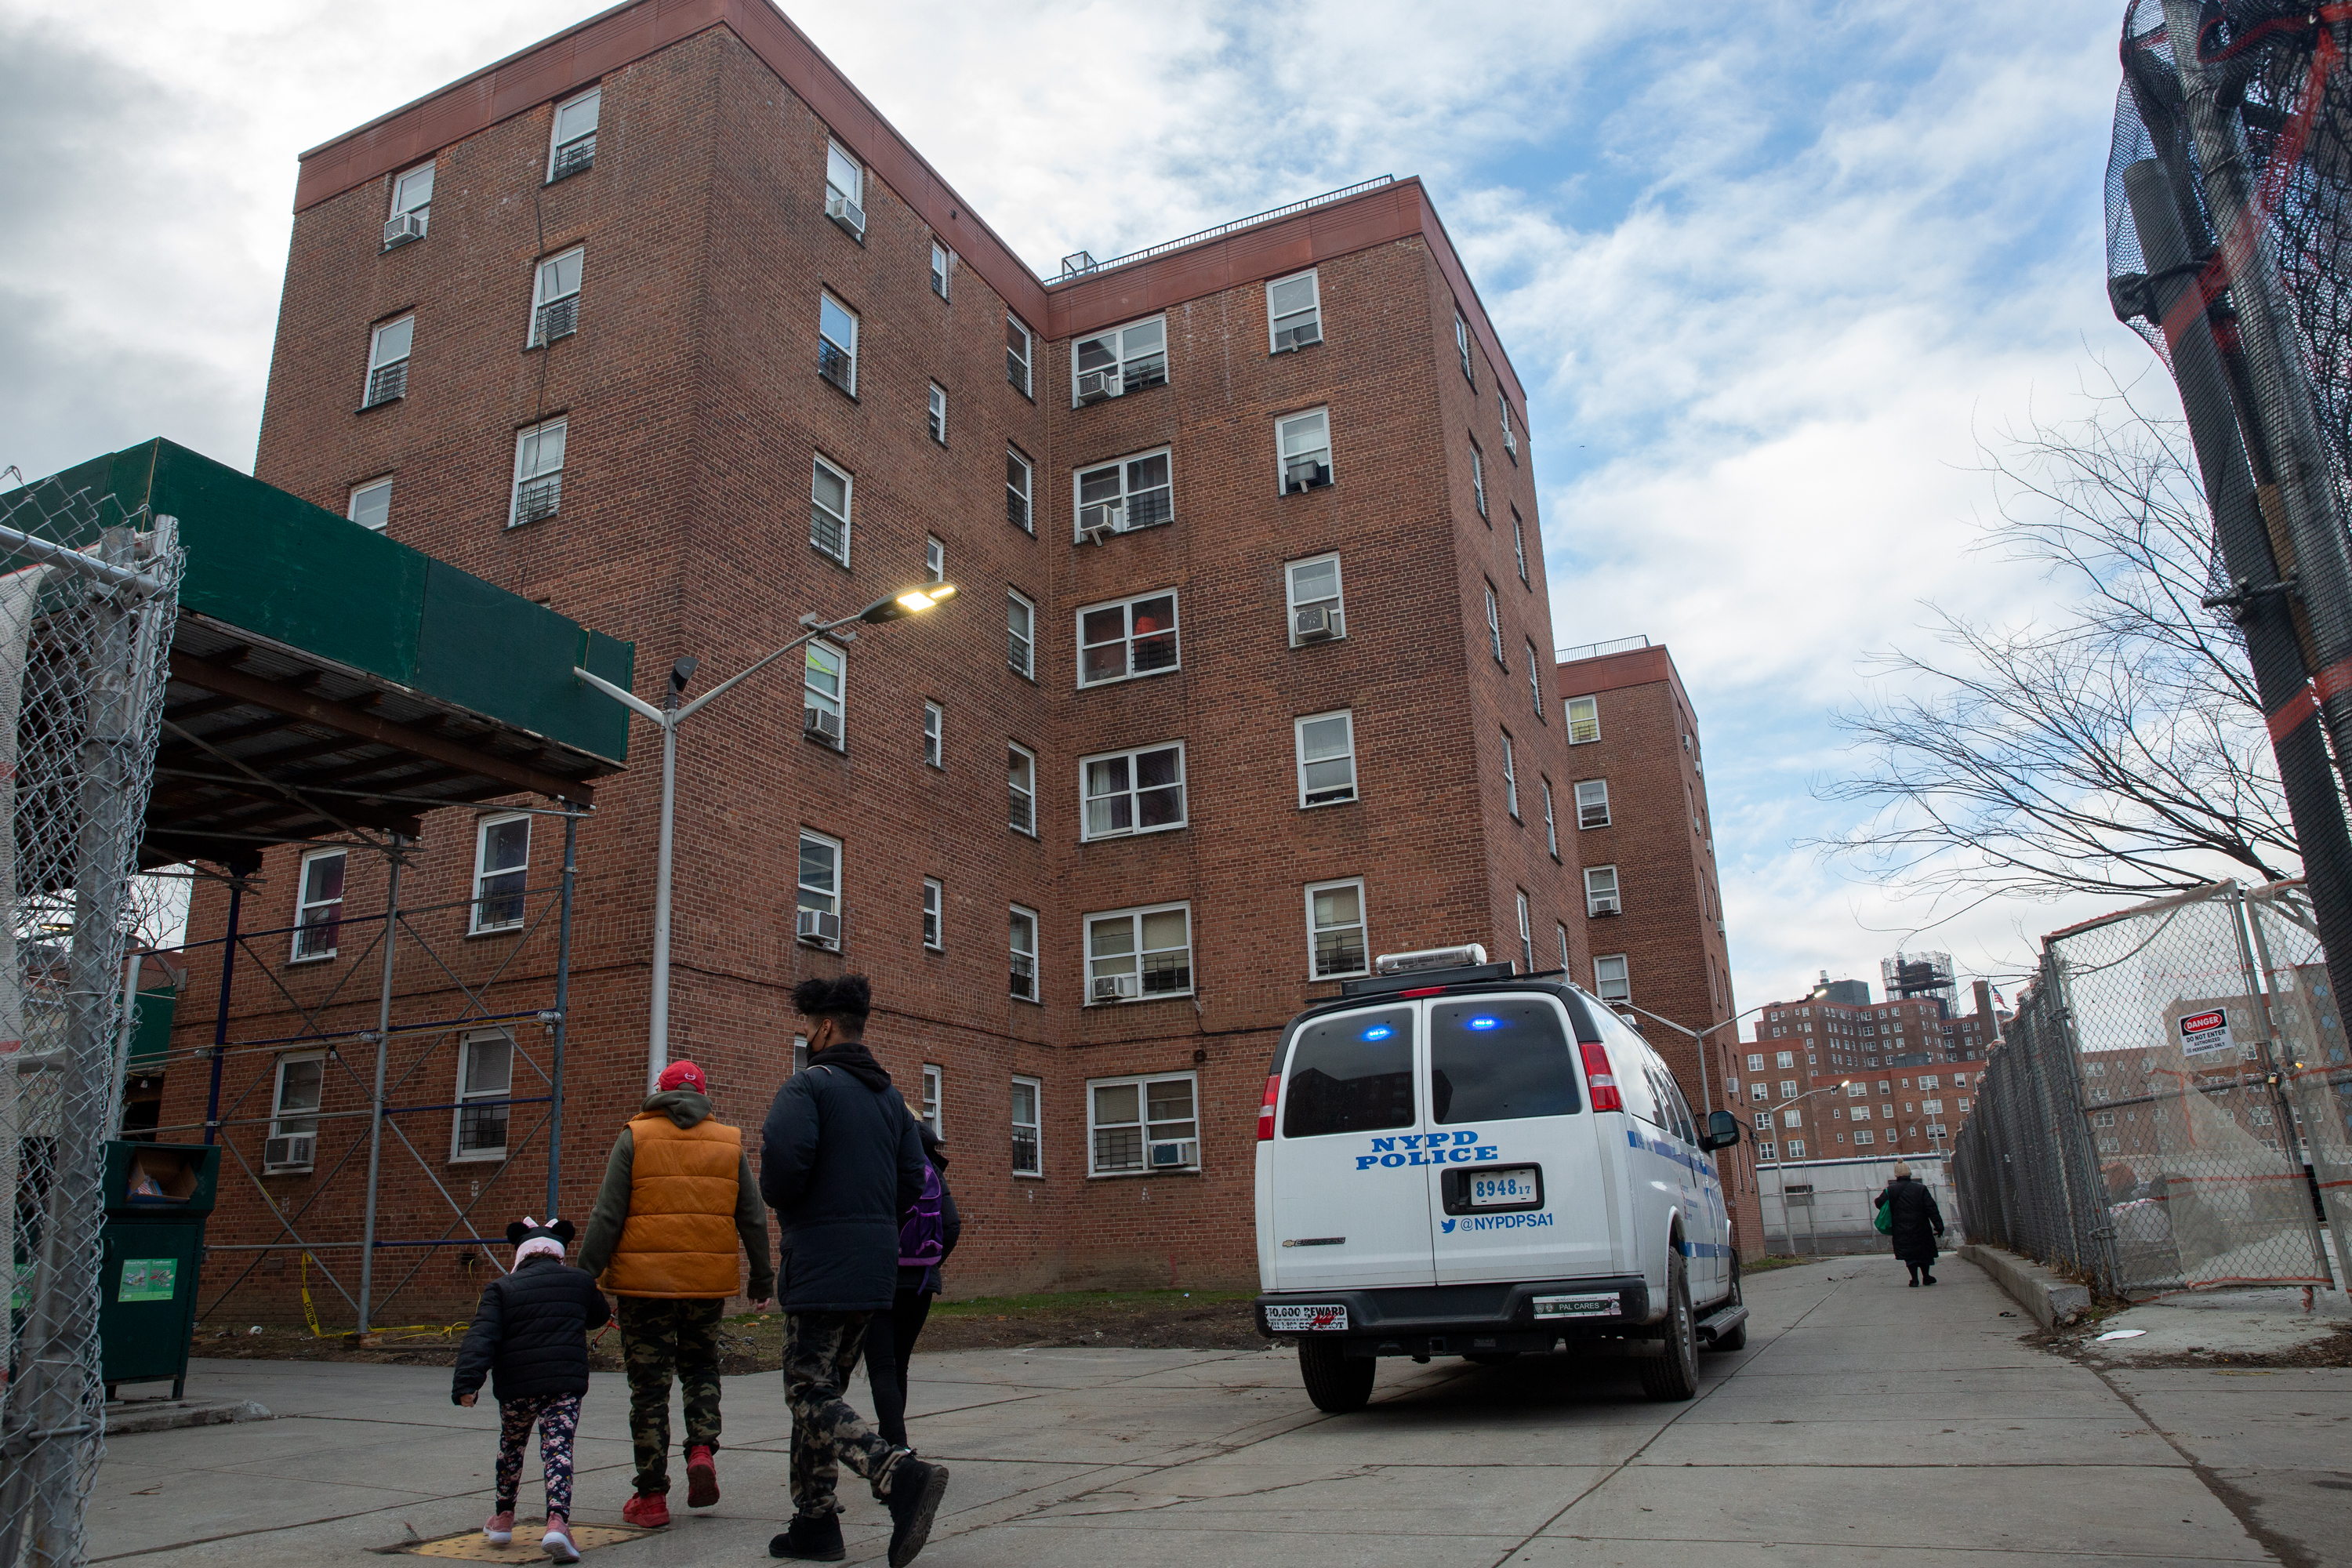 NYPD officers stand watch at the Red Hook Houses in Brooklyn, Jan. 27, 2021.